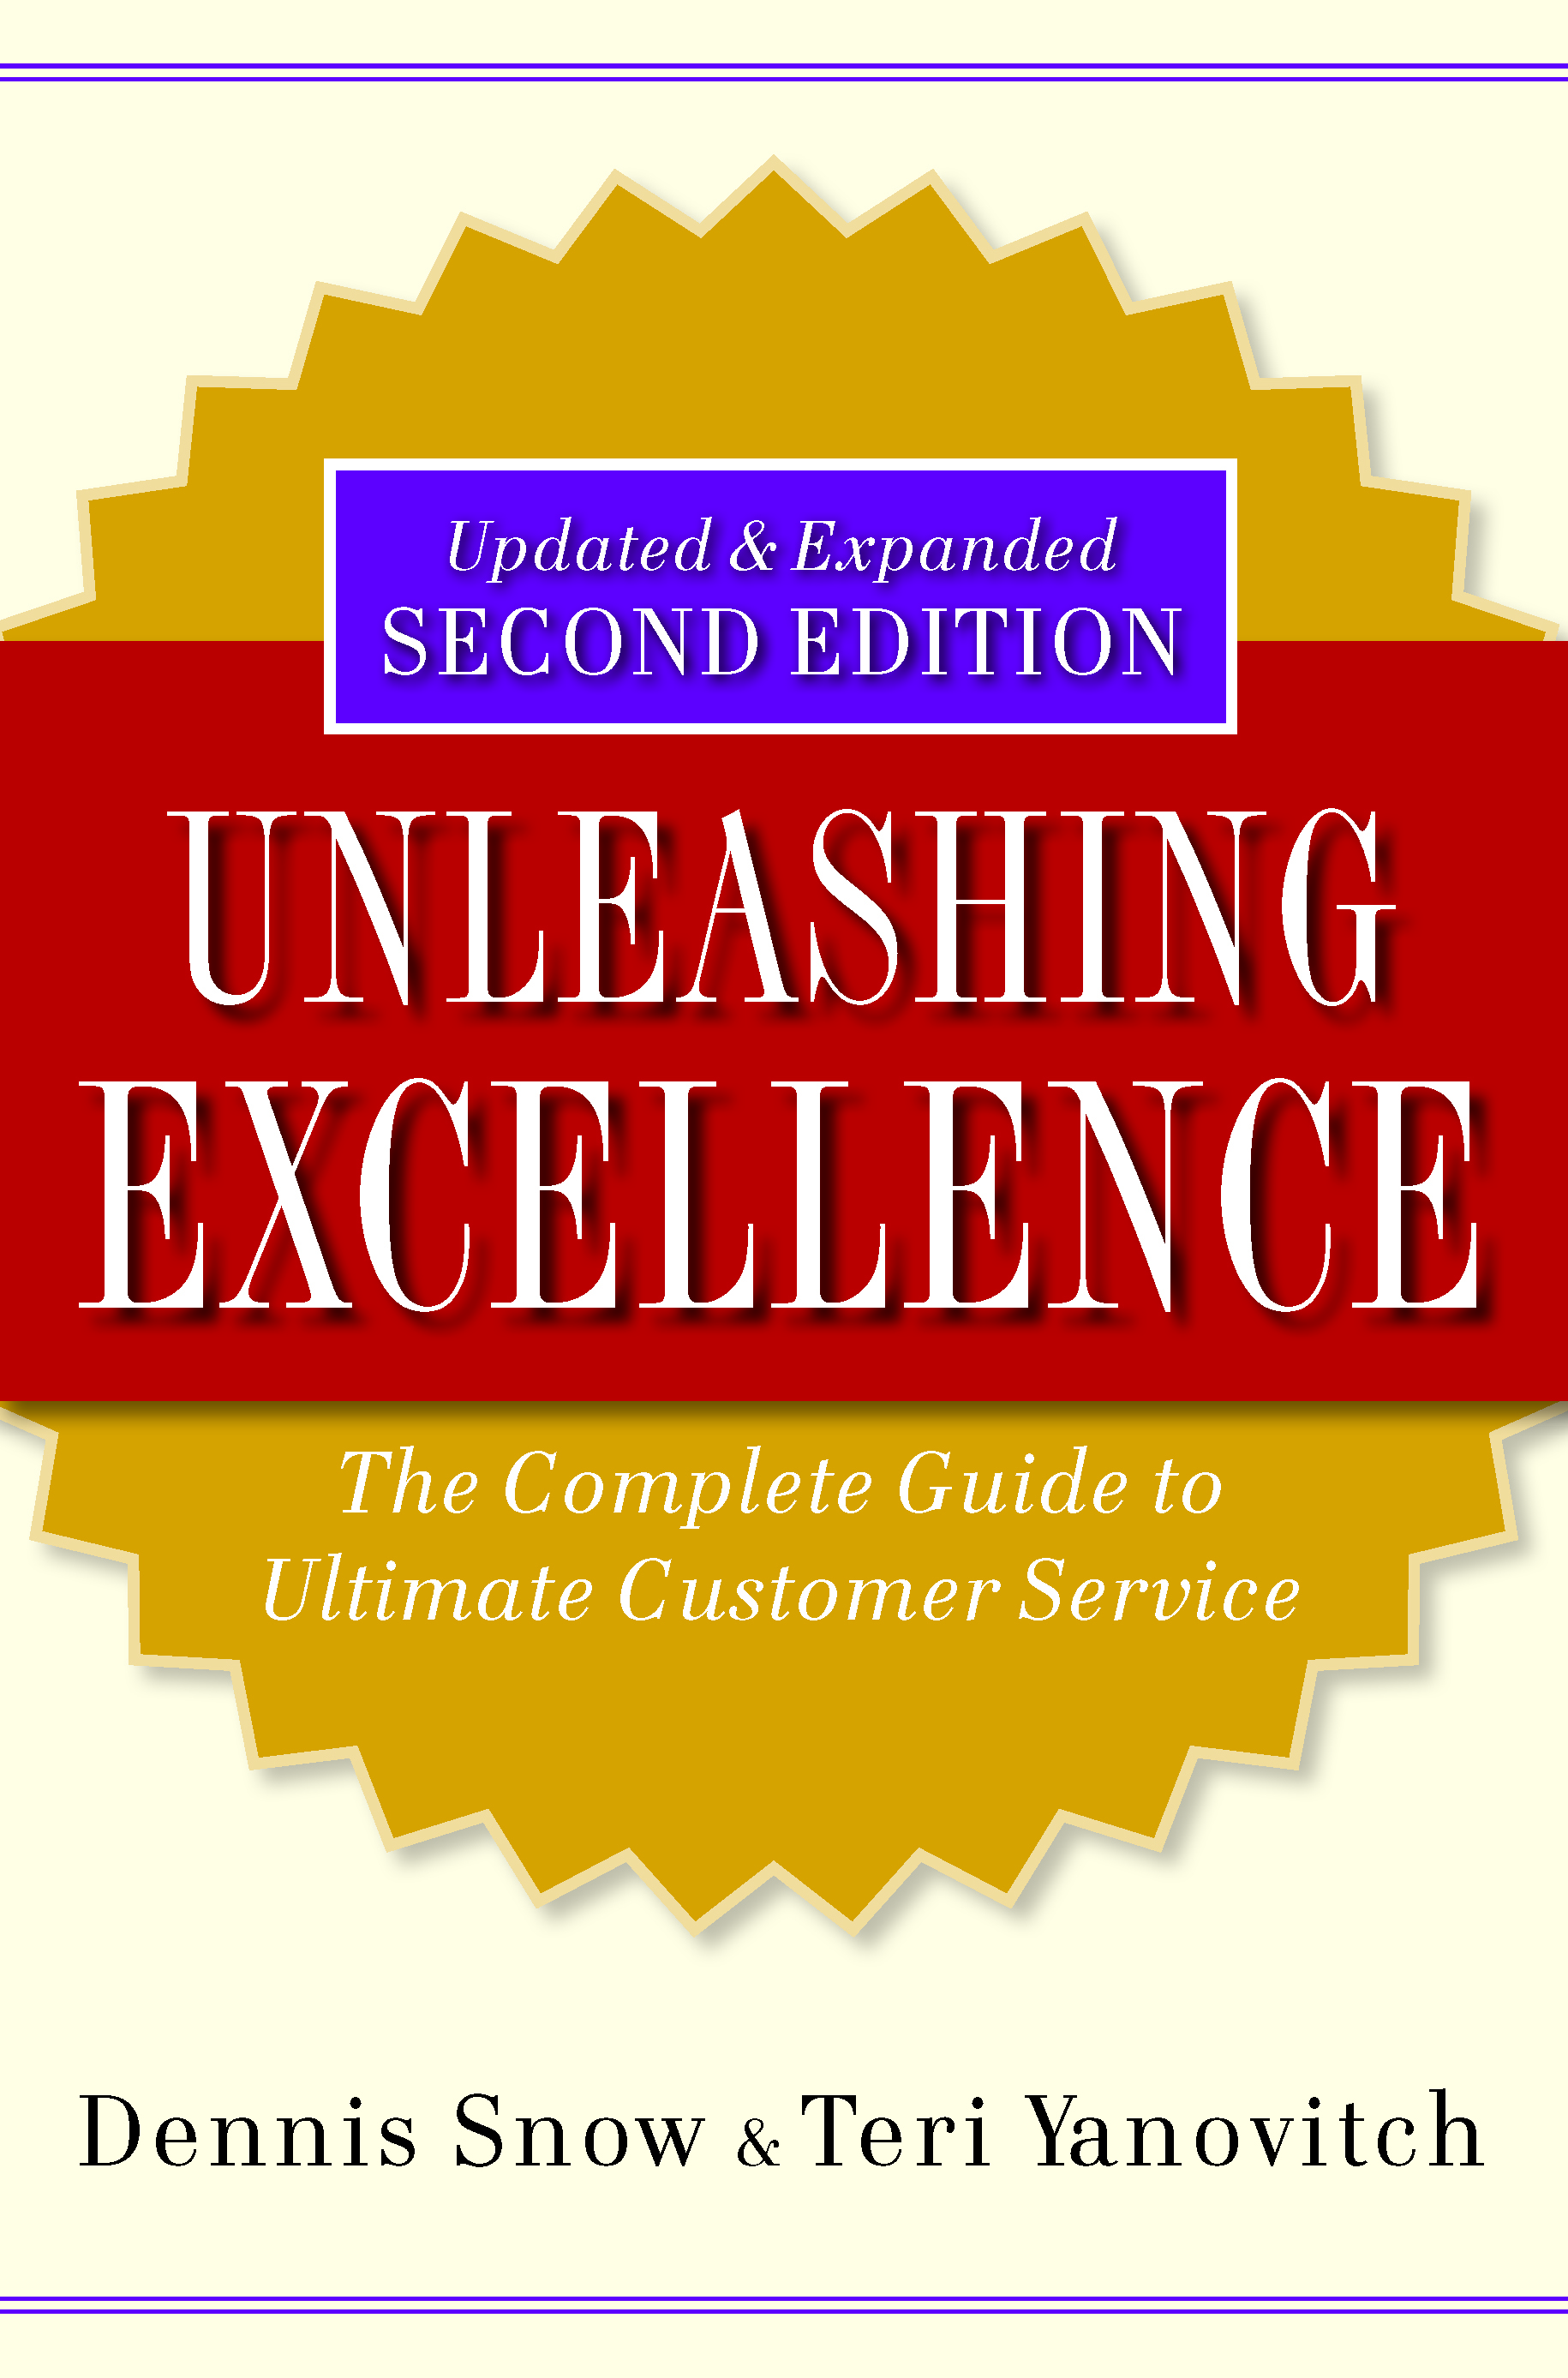 unleashing excellence press the complete guide to ultimate rh unleashingexcellence com TV Guide Customer Service Department Customer Service Manual